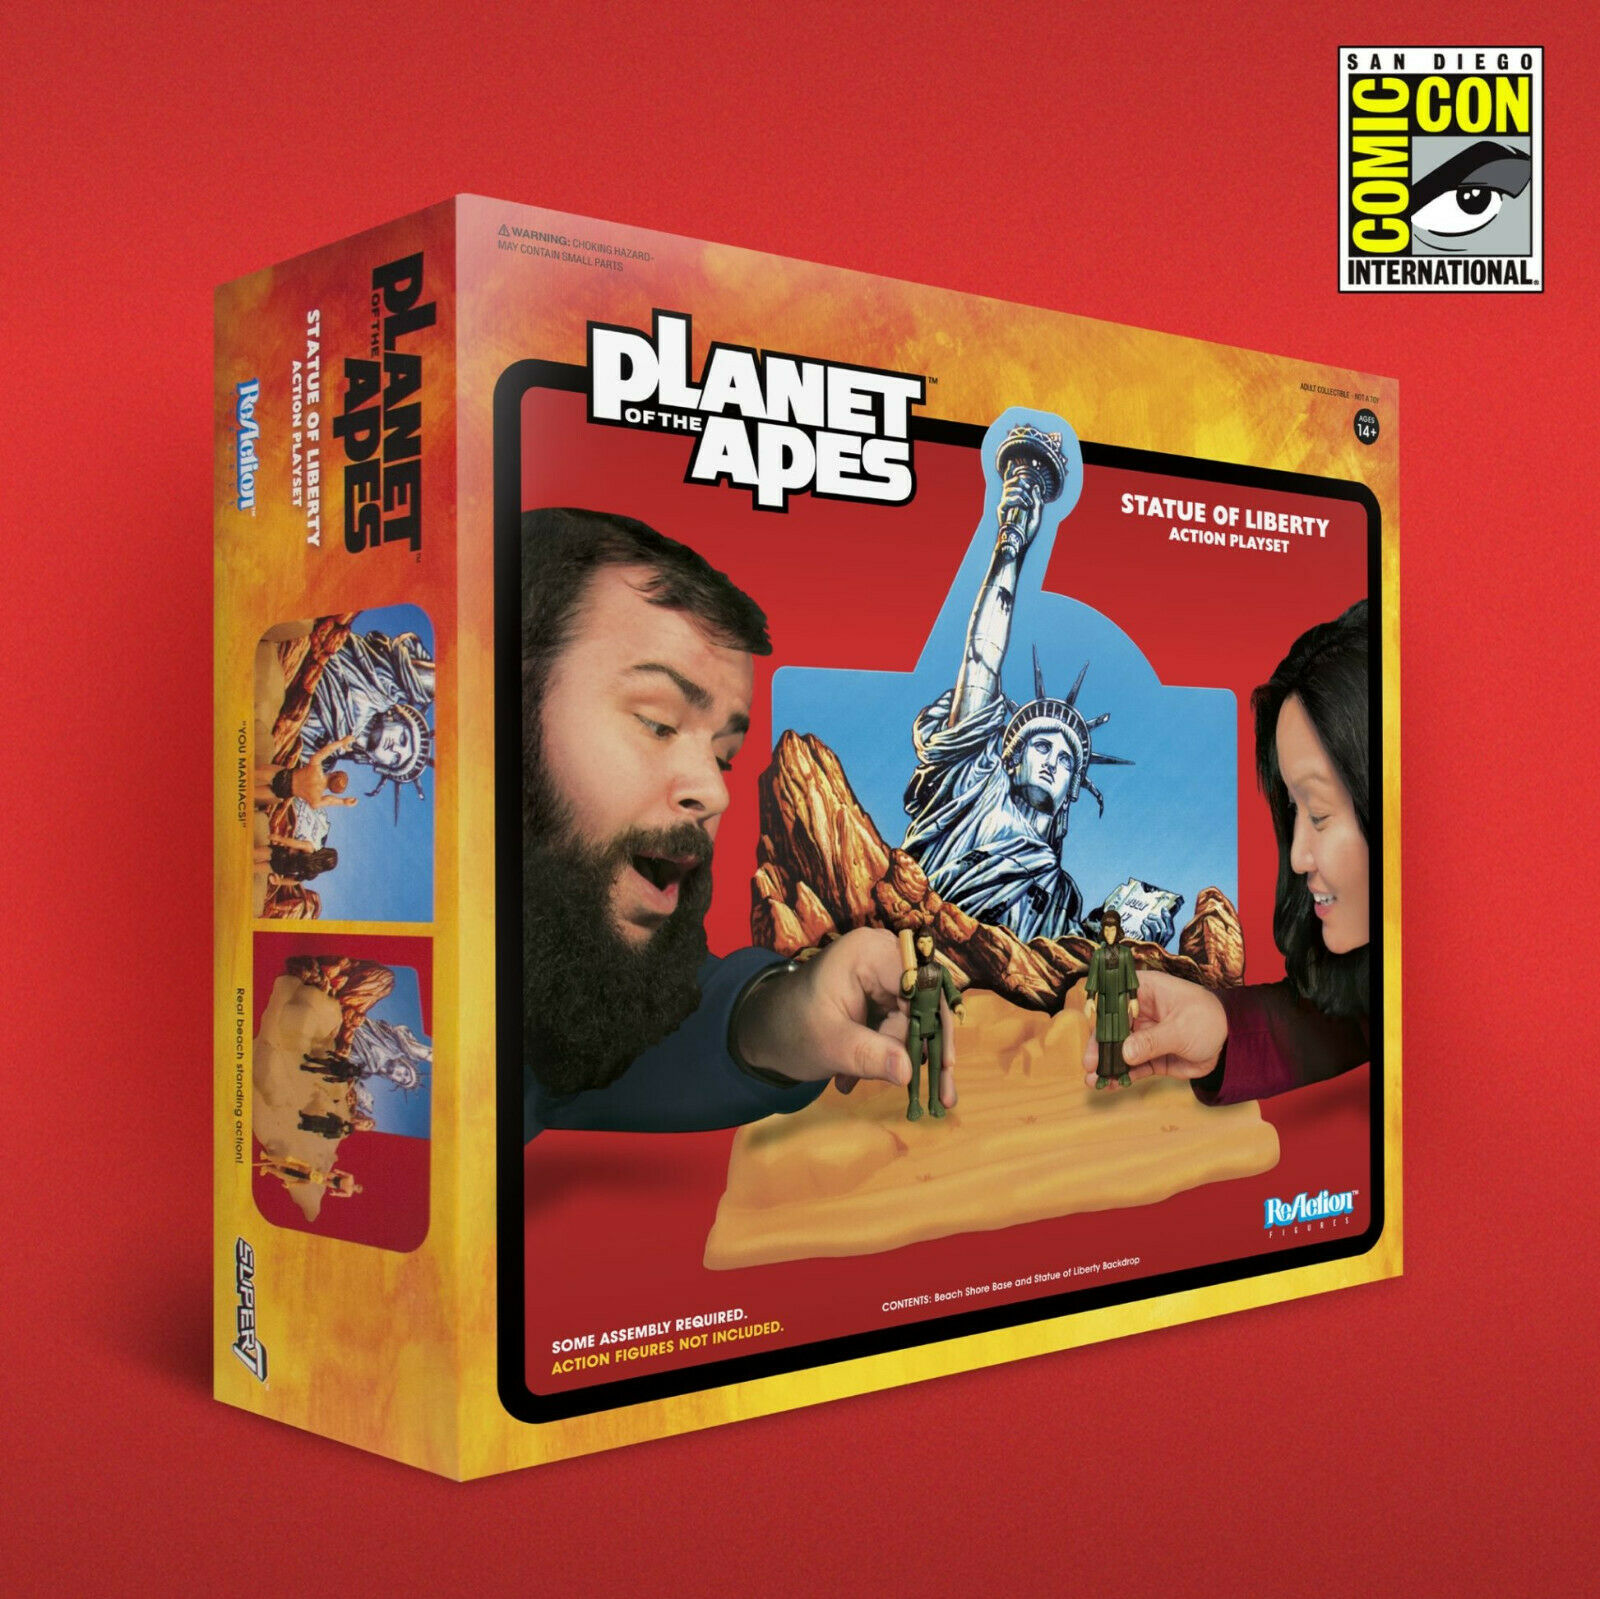 Planet of the Apes SDCC 2018  Statue of Liberty Playset Reazione personaggio SUPER 7  n ° 1 online